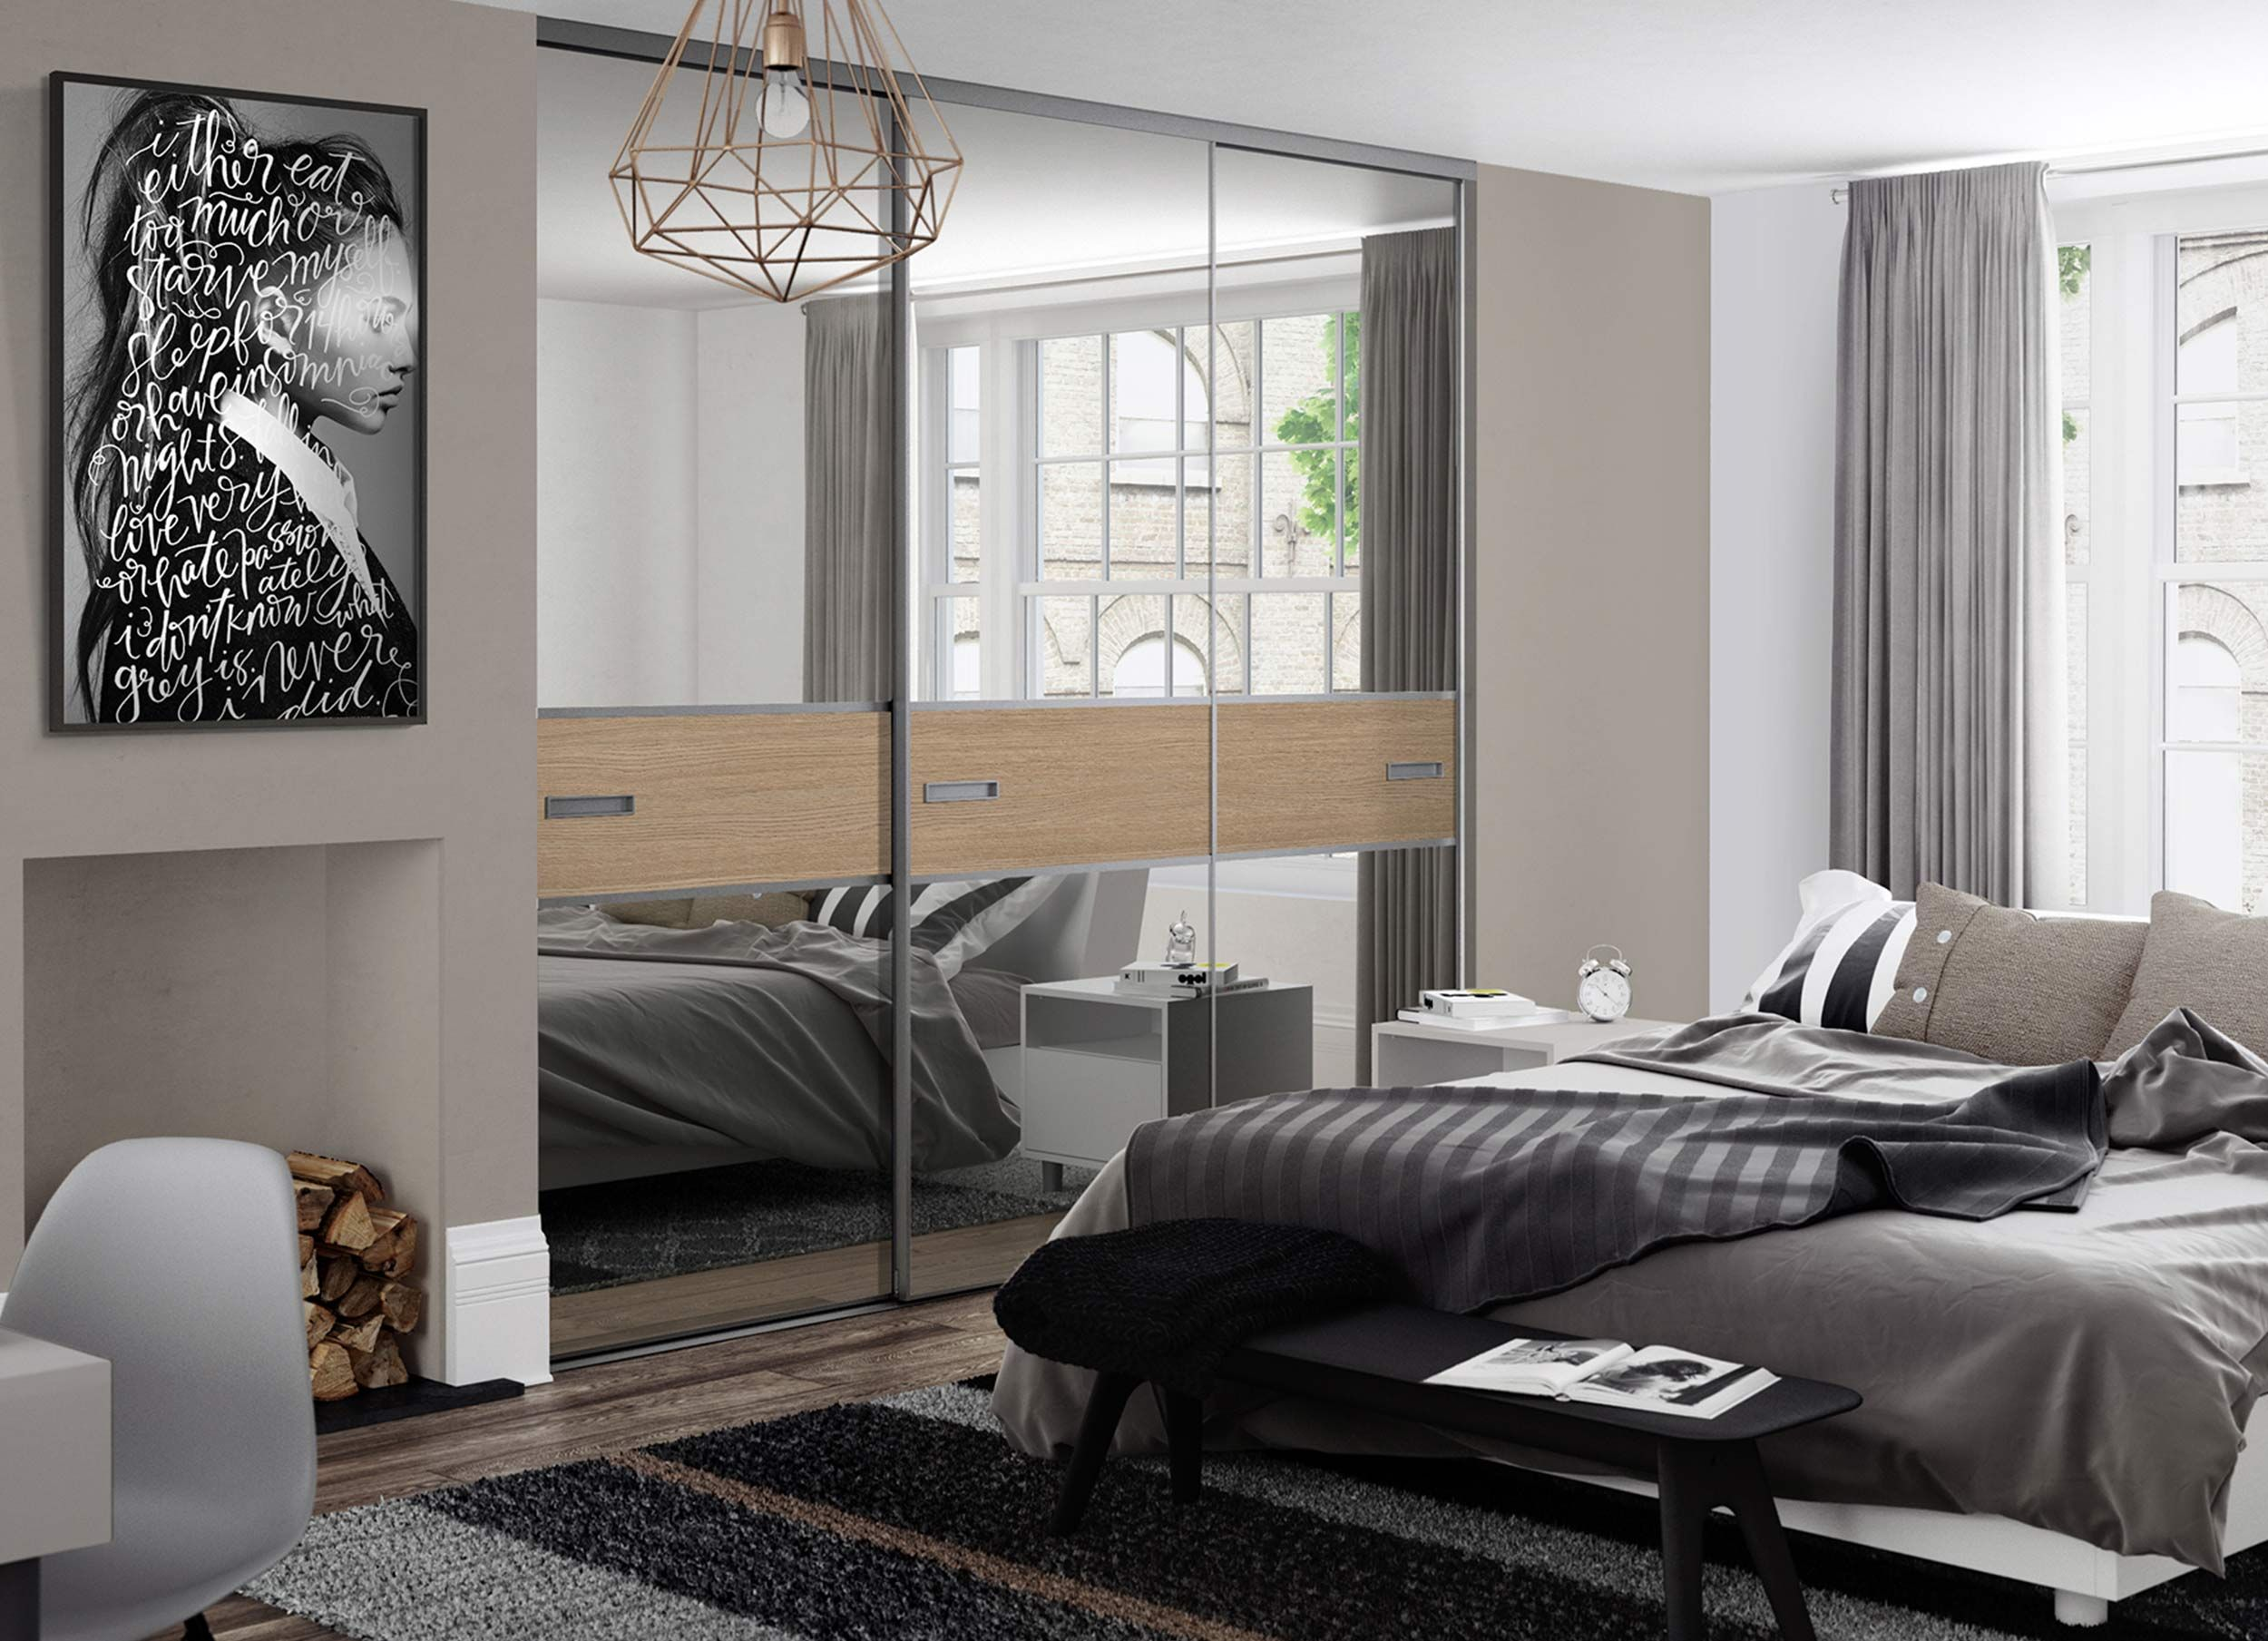 3 panel mirrored sliding closet doors - Spaceslide Is The Uk S Number 1 For Made To Measure Sliding Wardrobe Doors And Interiors As Well As Fitted Wardrobes Sliding Doors And Bedroom Furniture